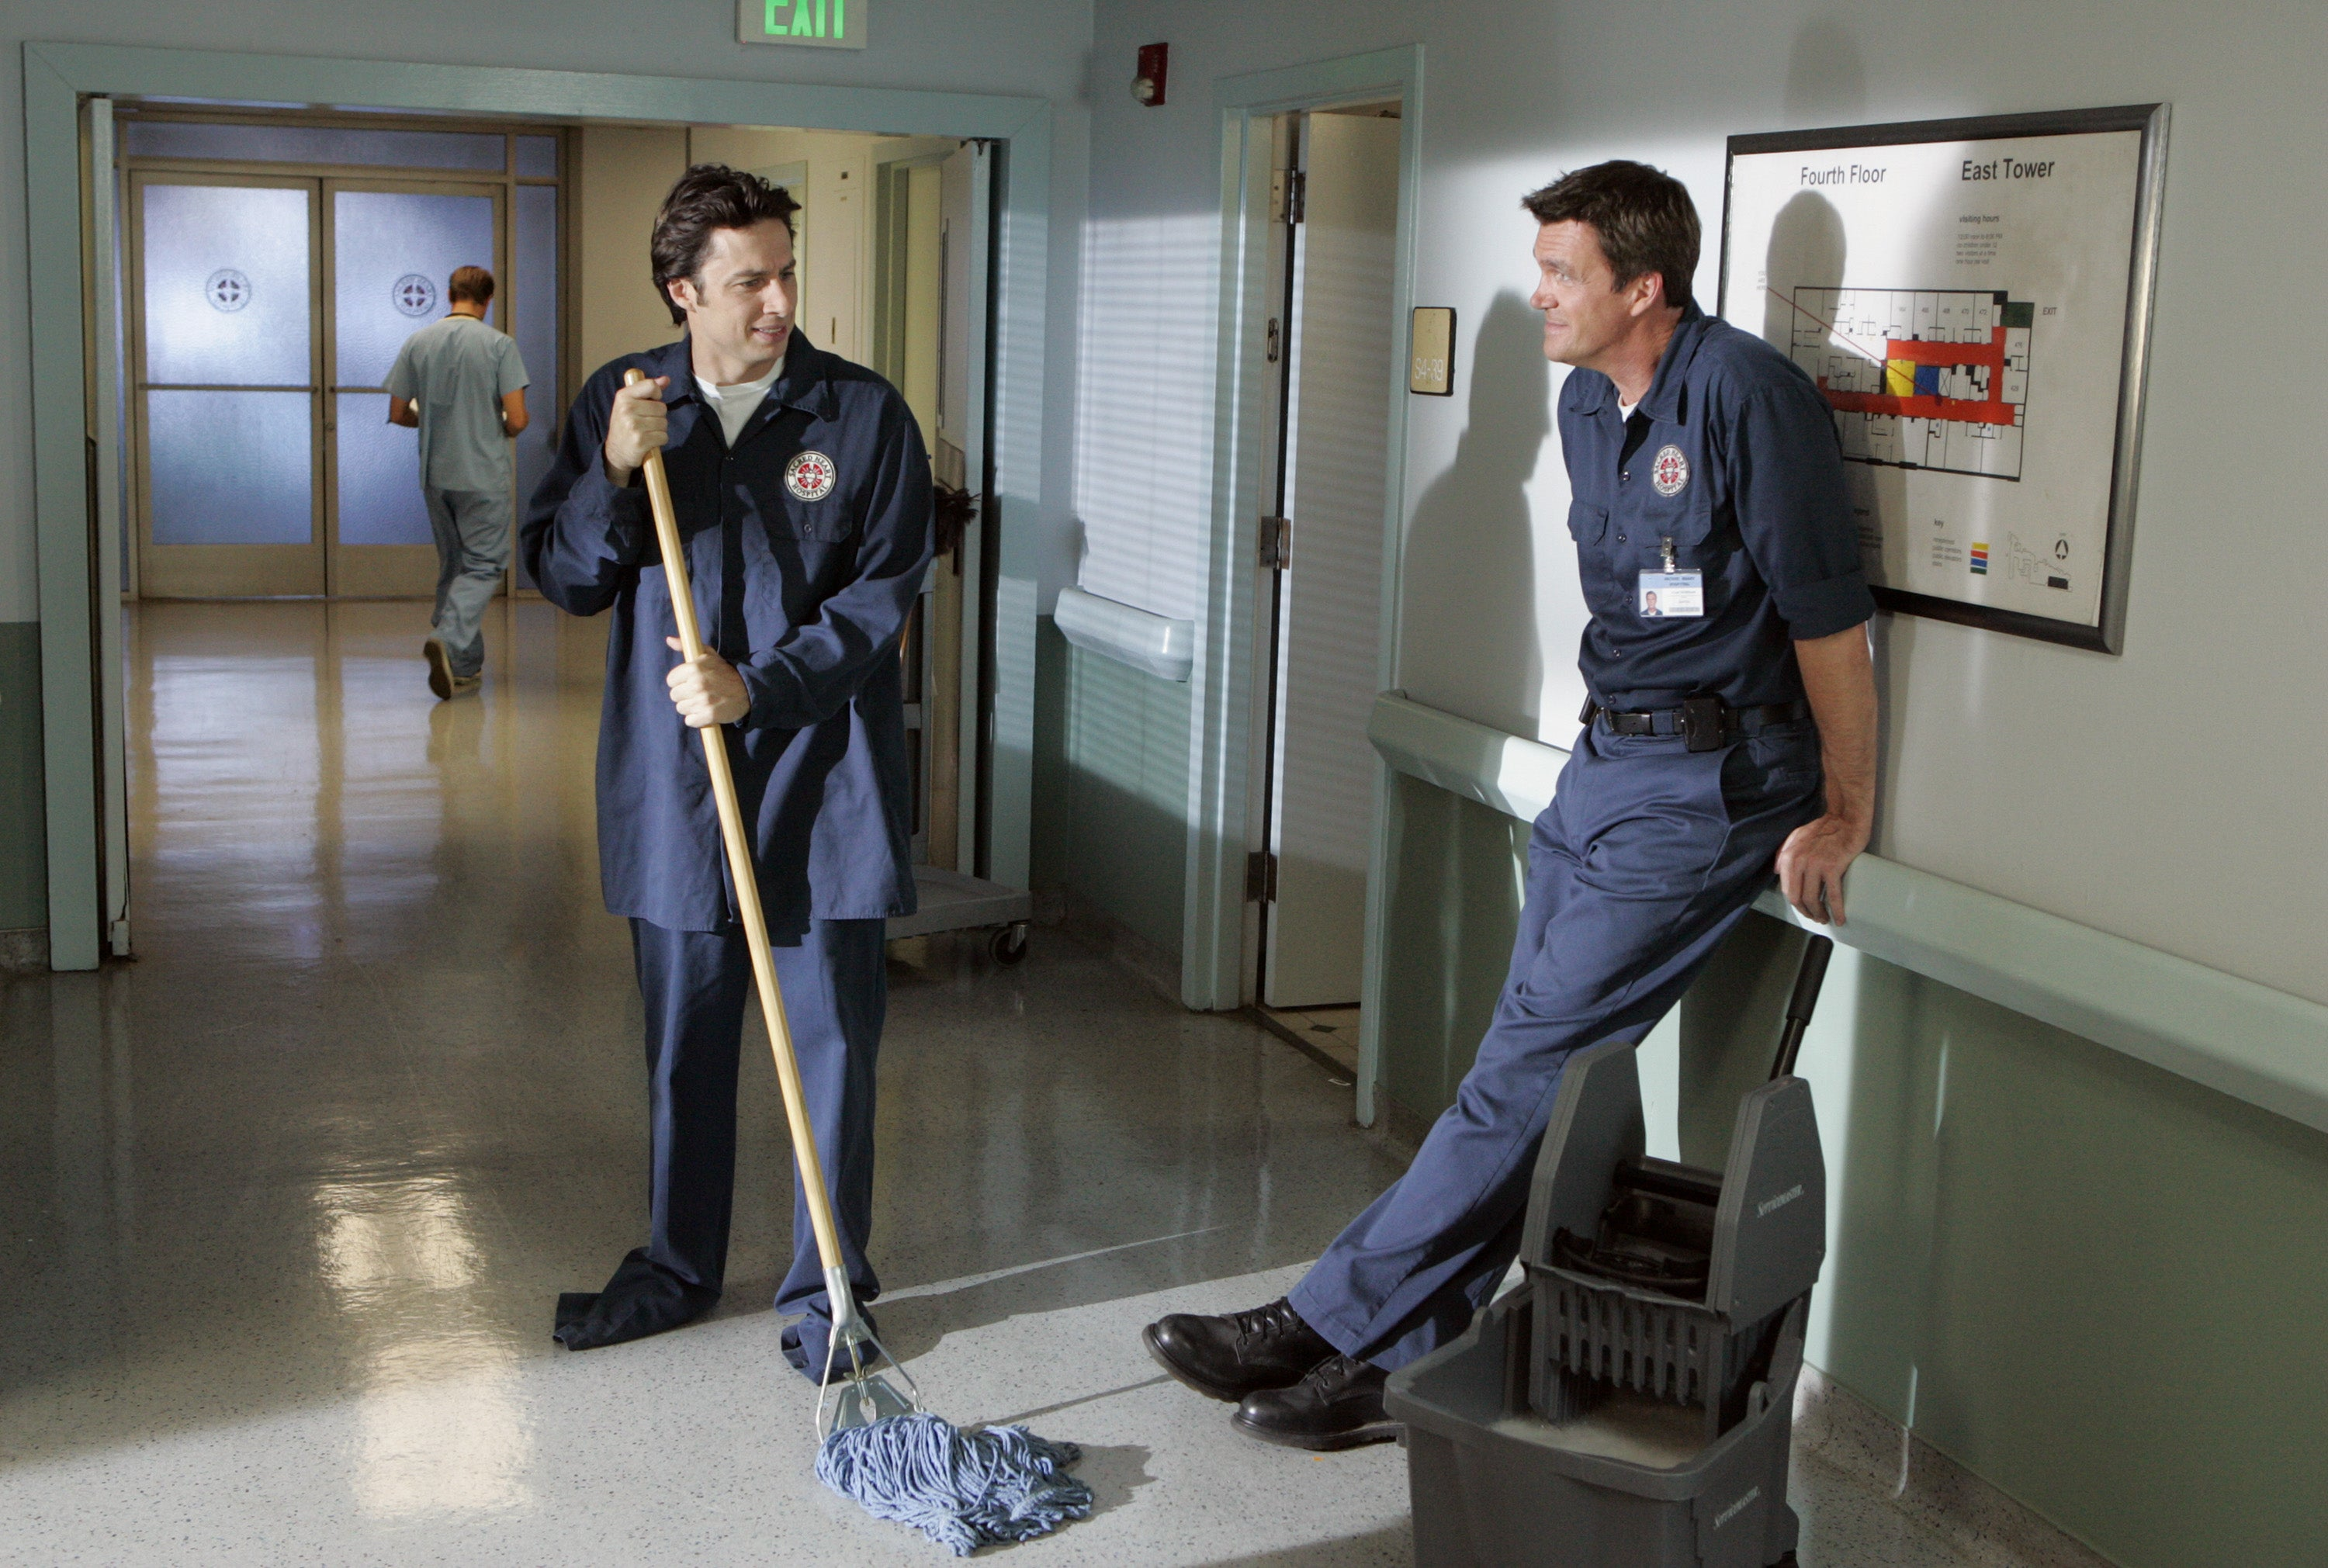 Janitors from Scrubs